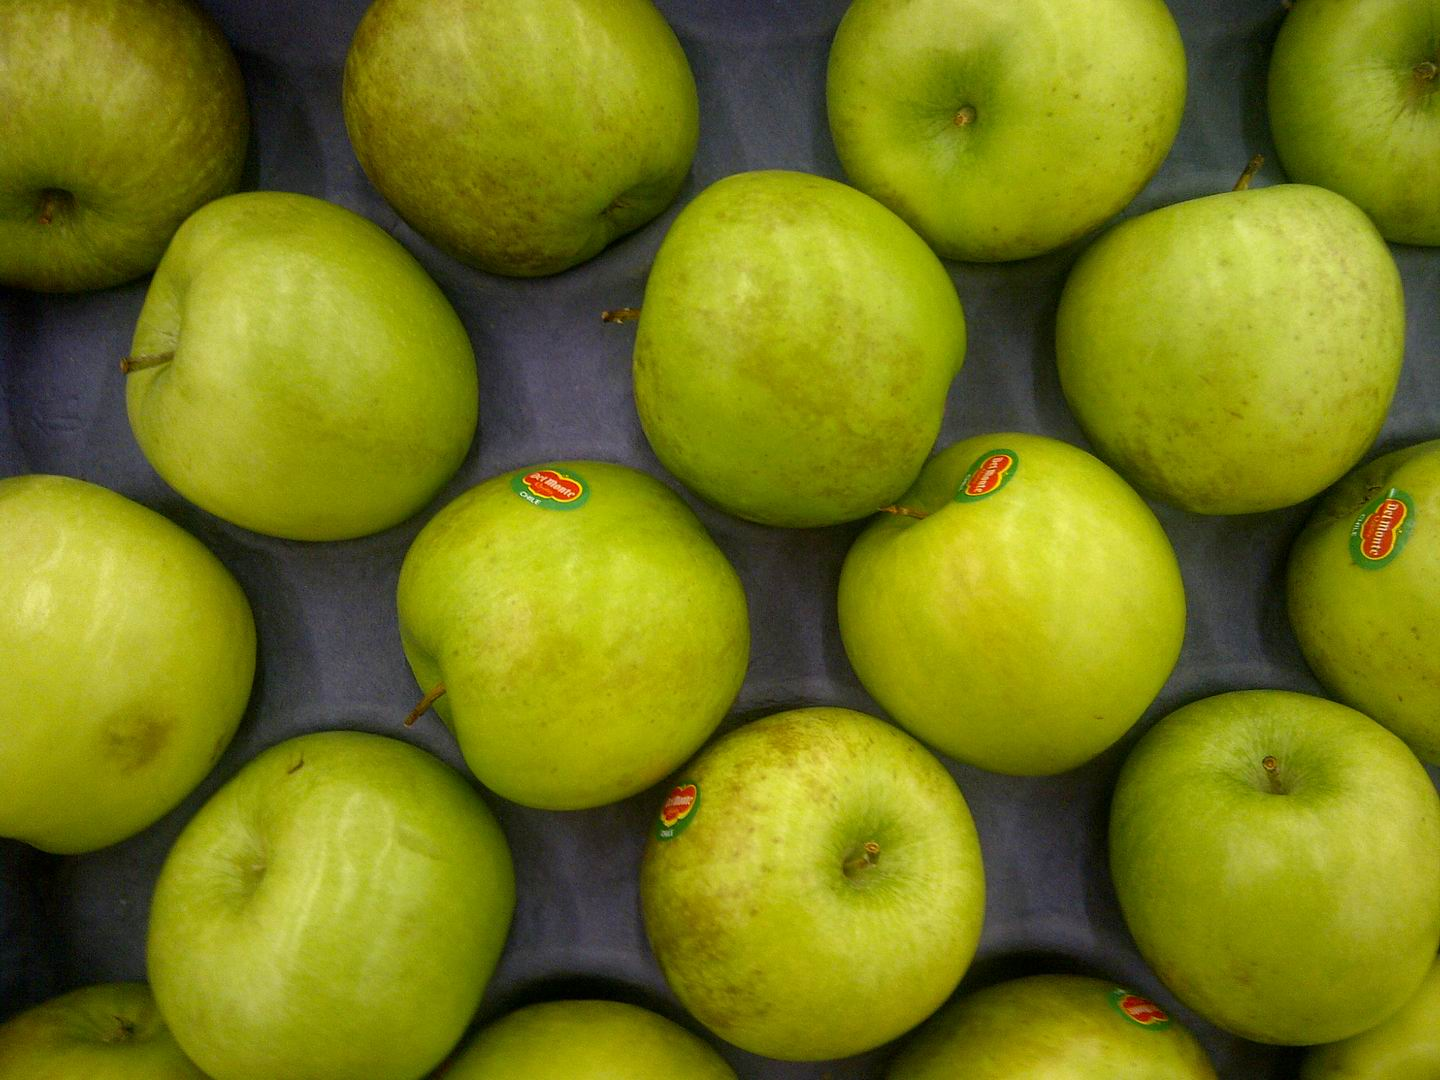 Types of Green Apple's http://commons.wikimedia.org/wiki/File:Green_Apple-R.jpg